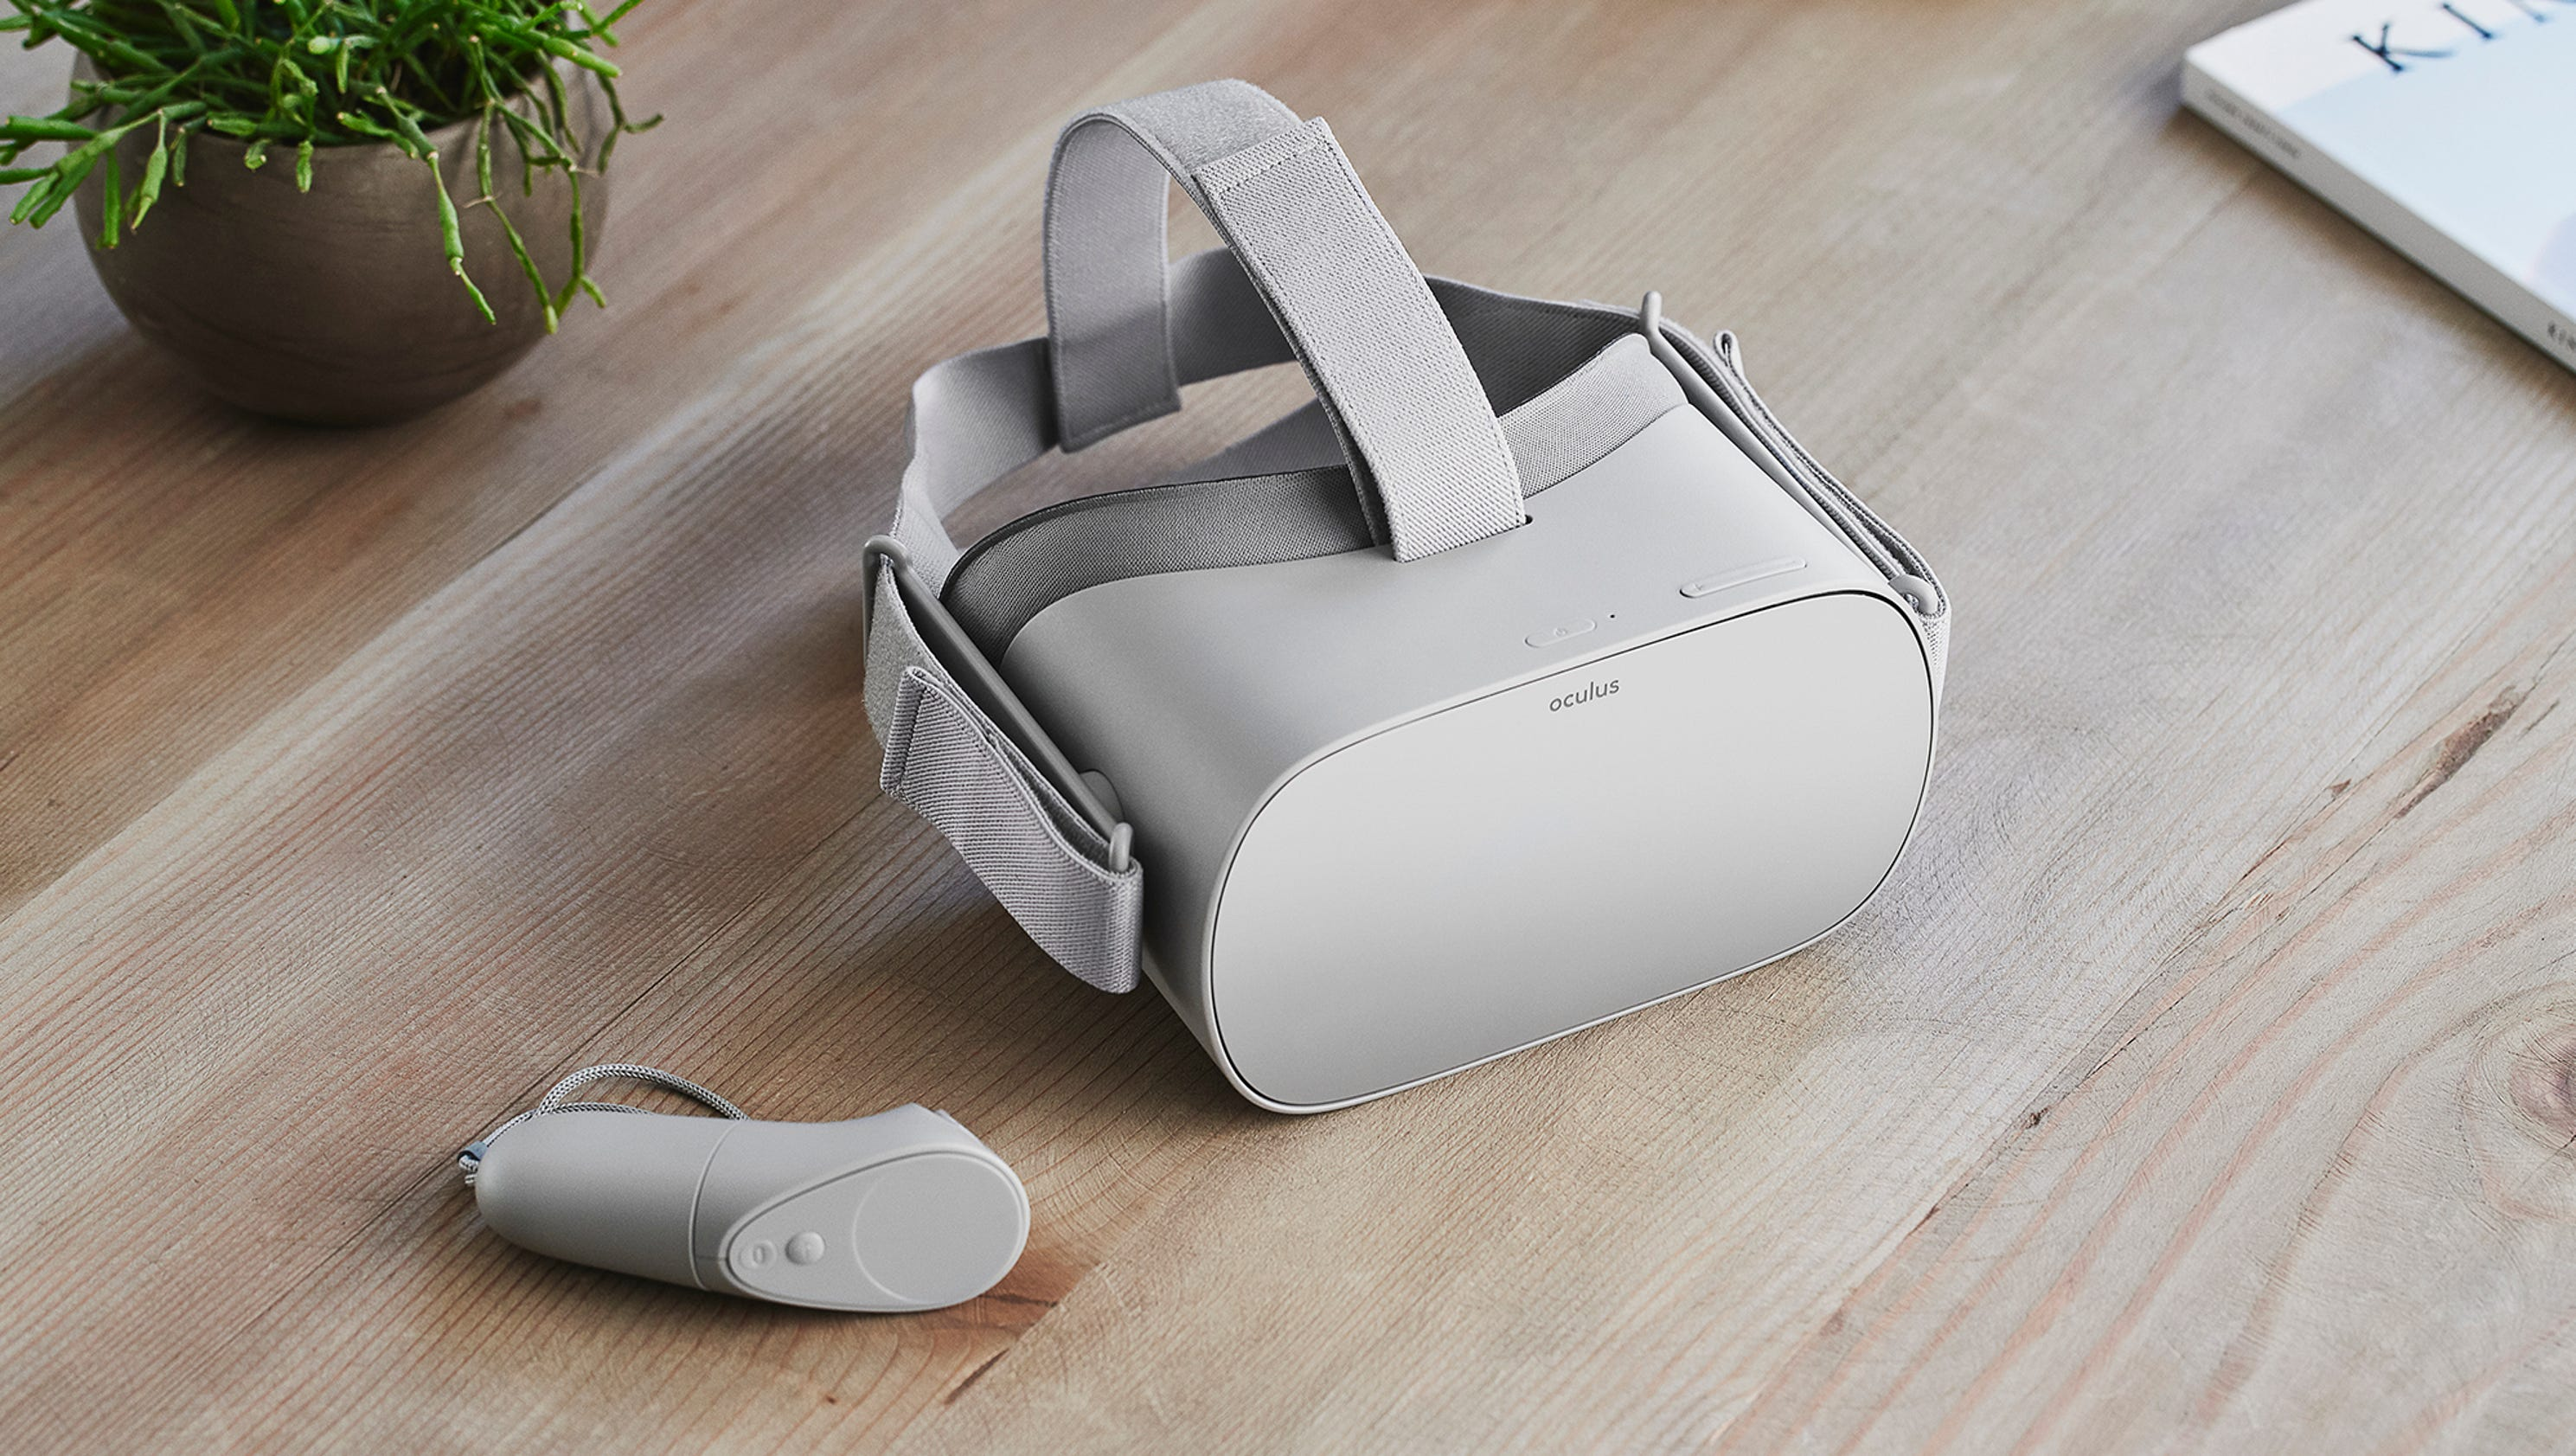 Facebook's Oculus Go ditches computer and phone in latest, $199 test of virtual reality